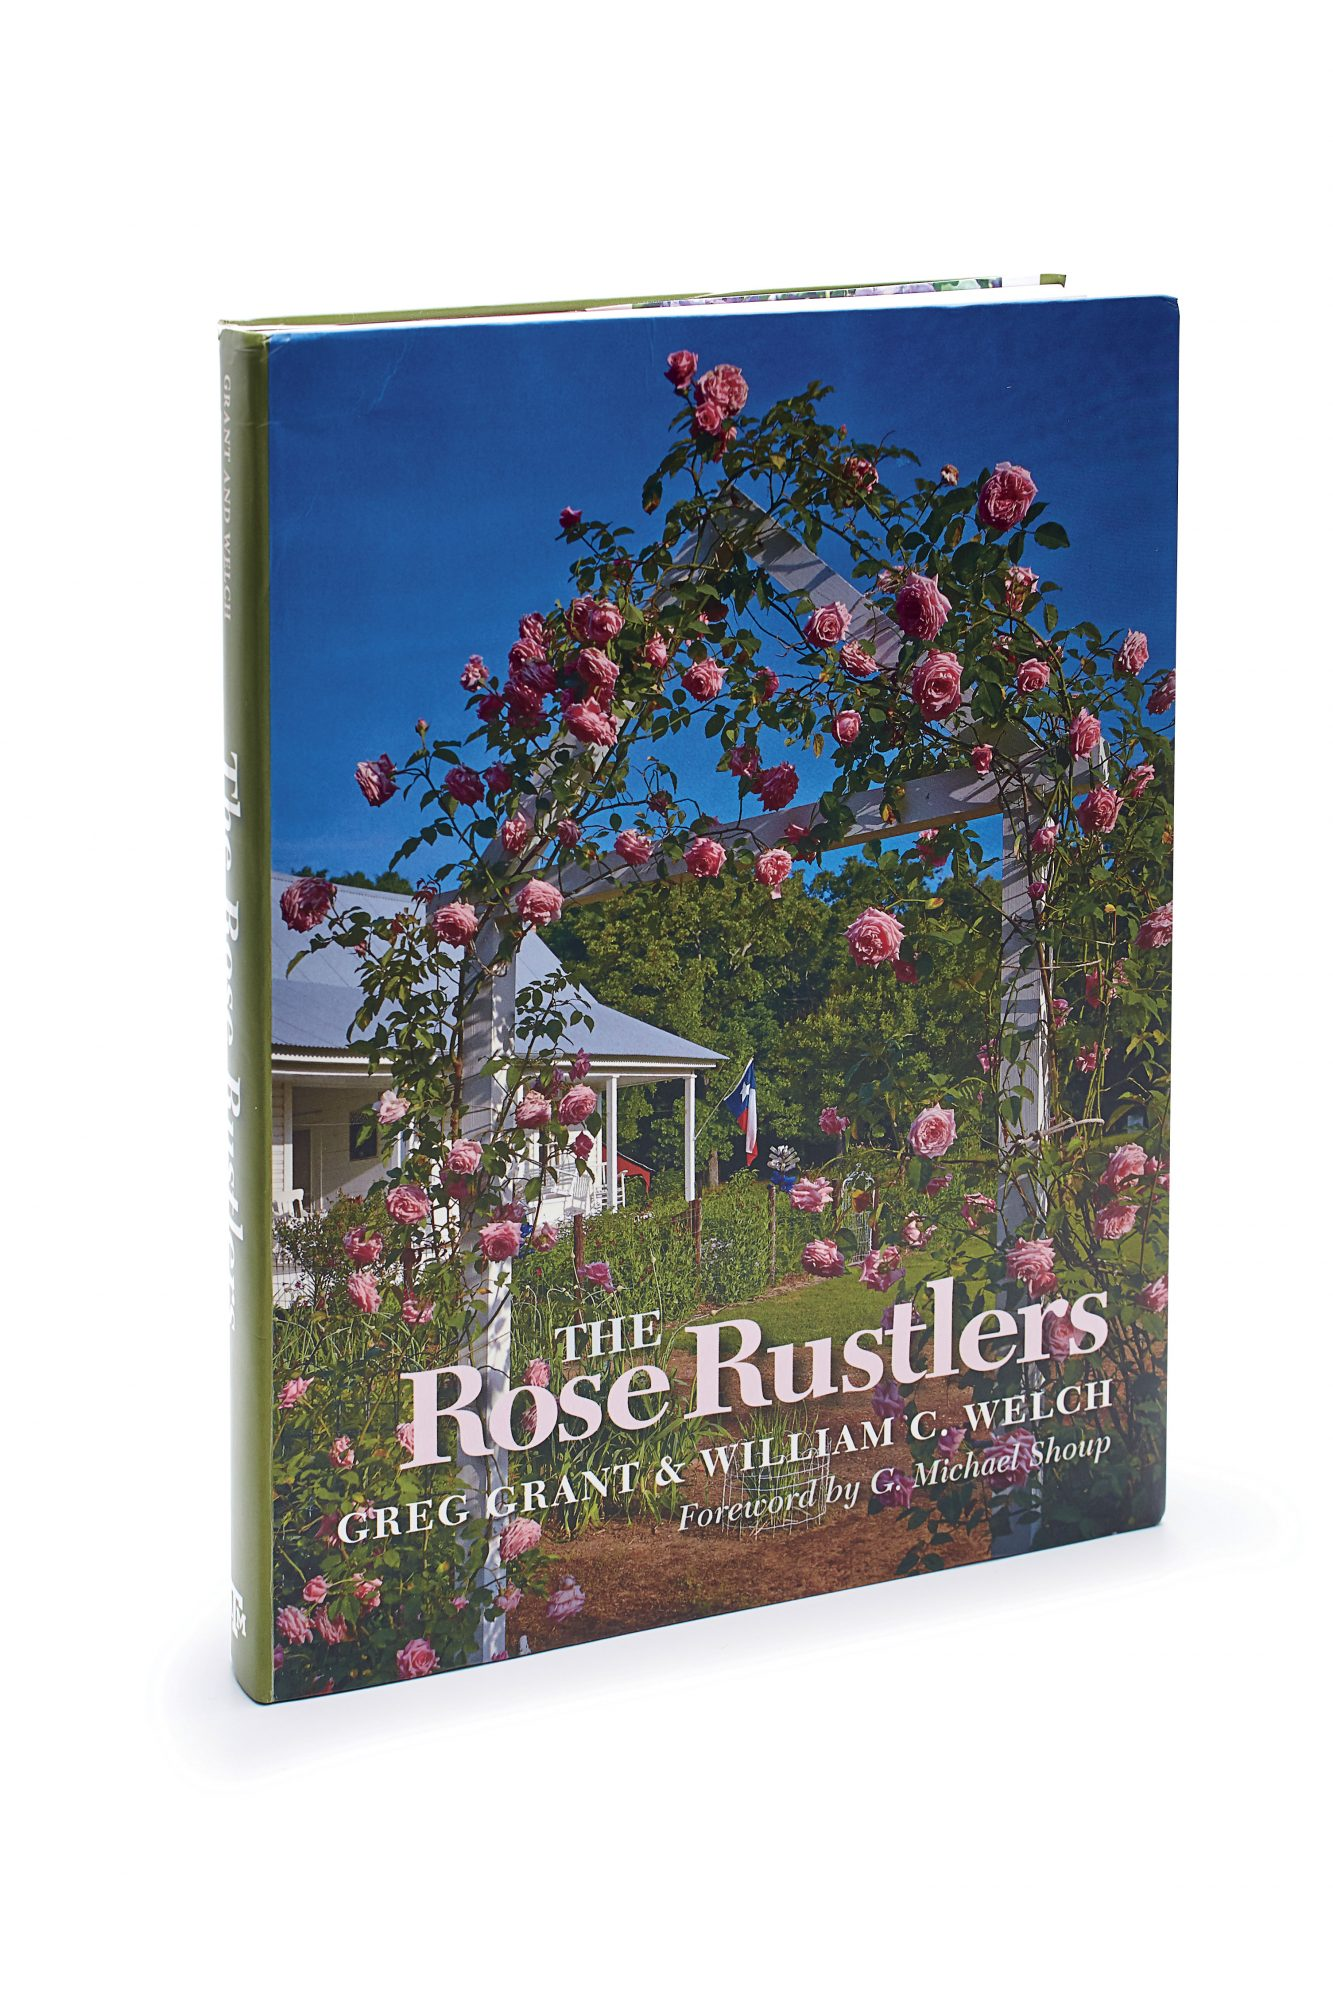 The Rose Rustlers Book